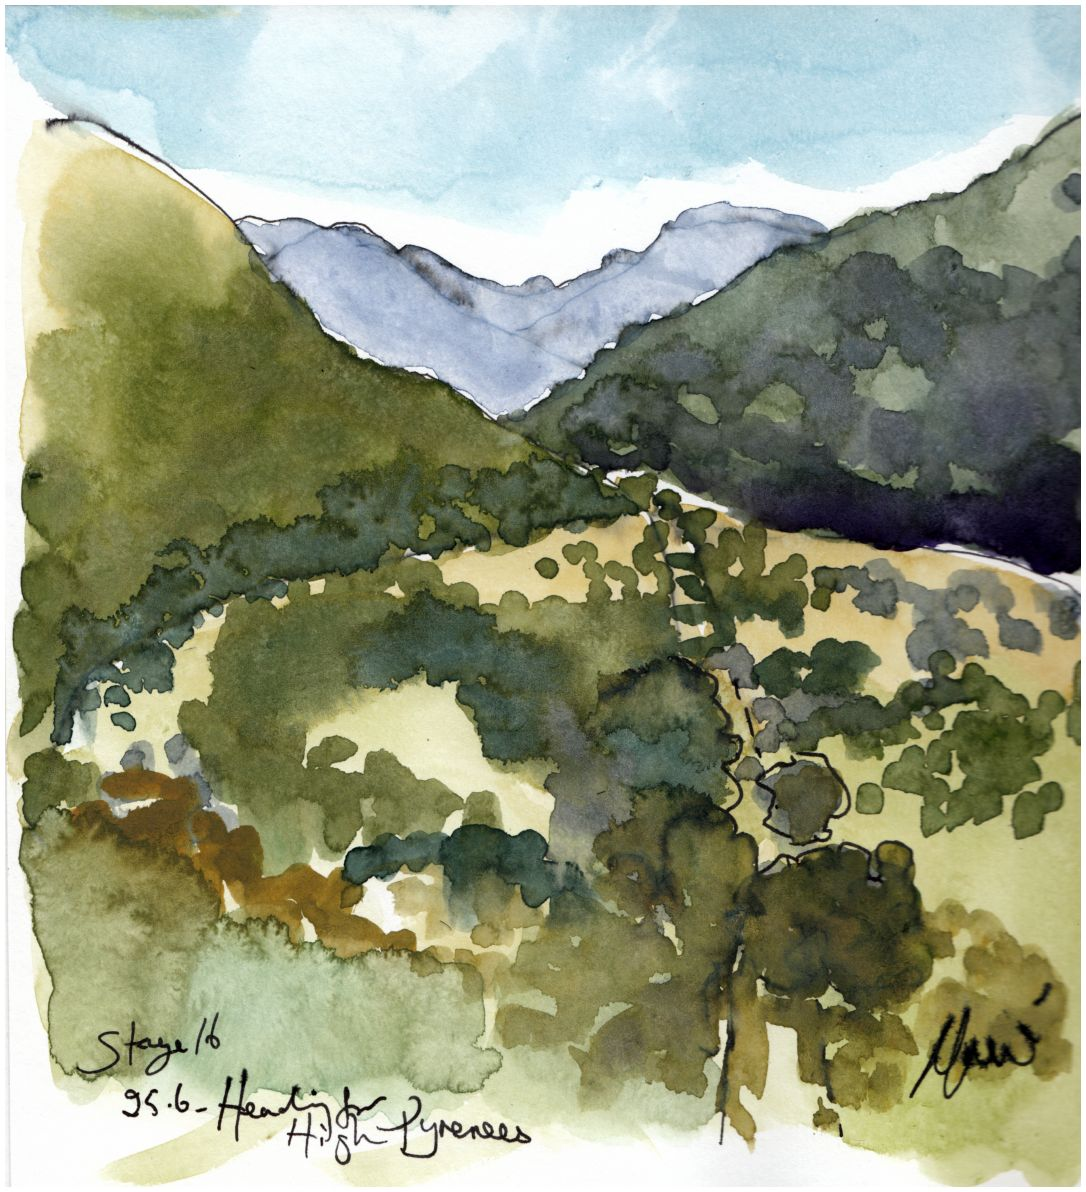 Cycling art, Tour de France, Stage 16 - Heading for the high Pyrenees..